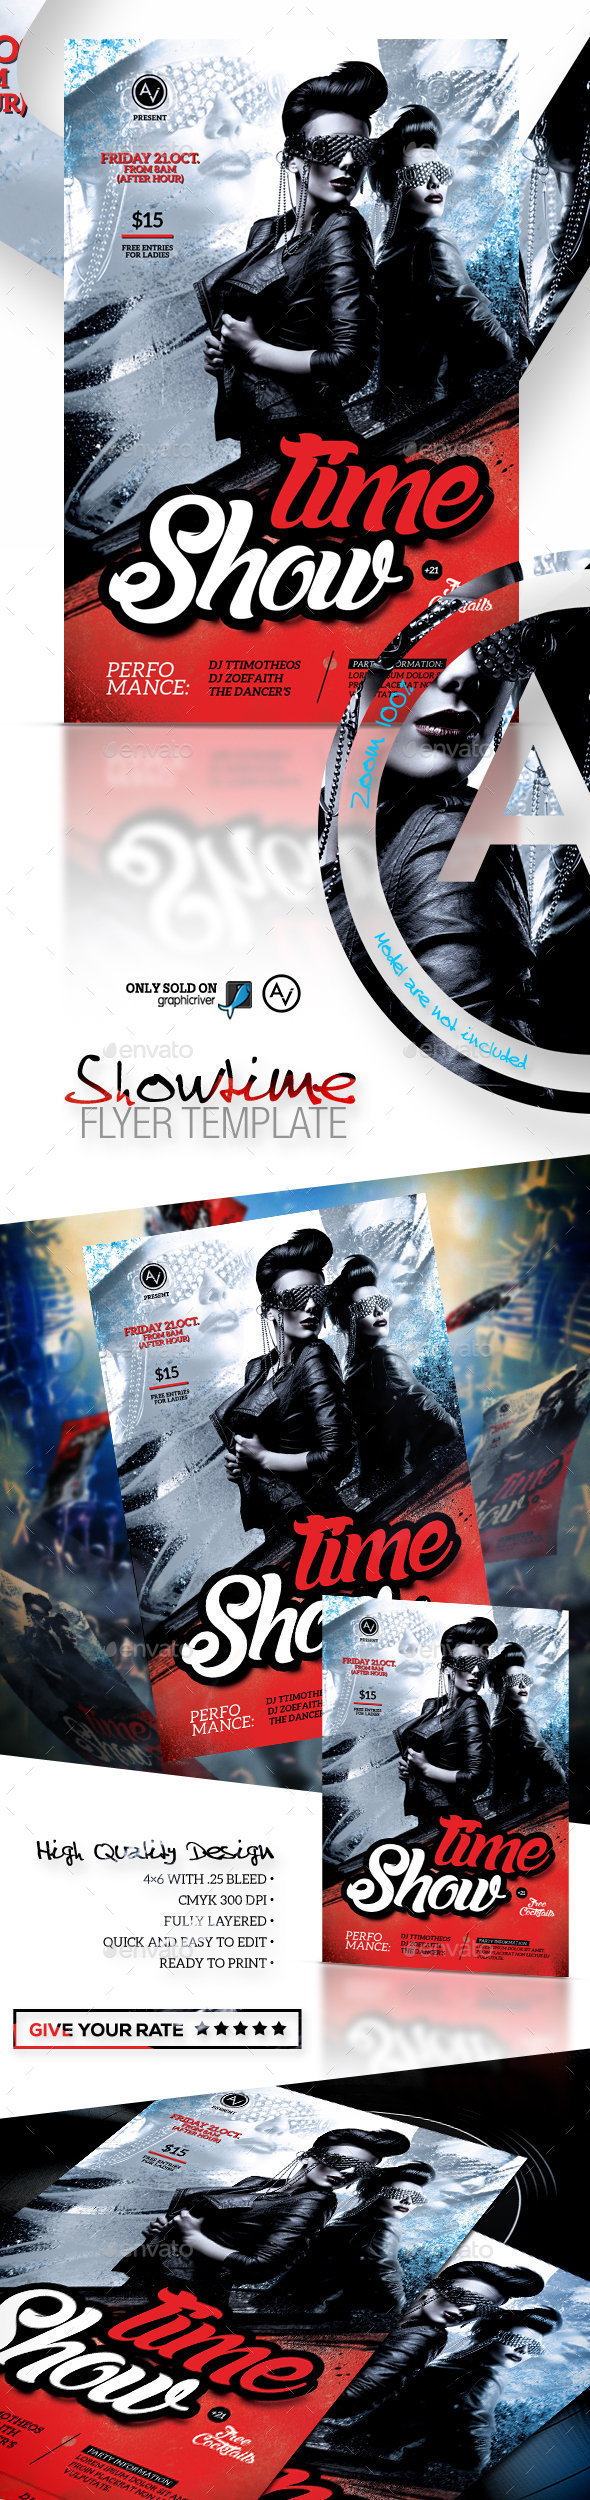 Showtime Flyer Template - Clubs & Parties Events